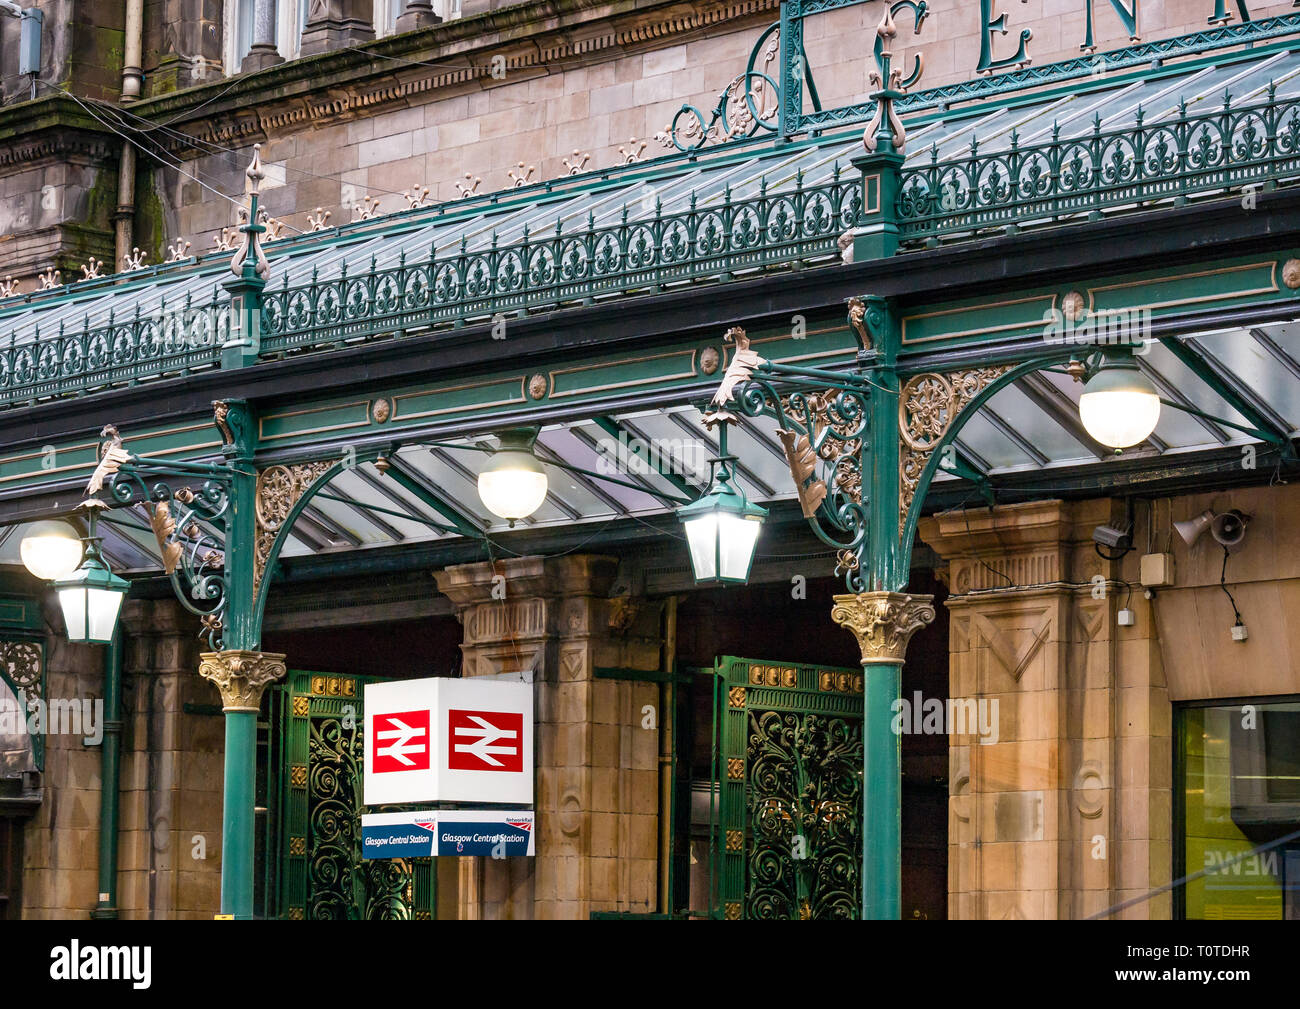 Ornate Victorian ironwork and lights at entrance of Glasgow Central Station, Scotland, UK - Stock Image